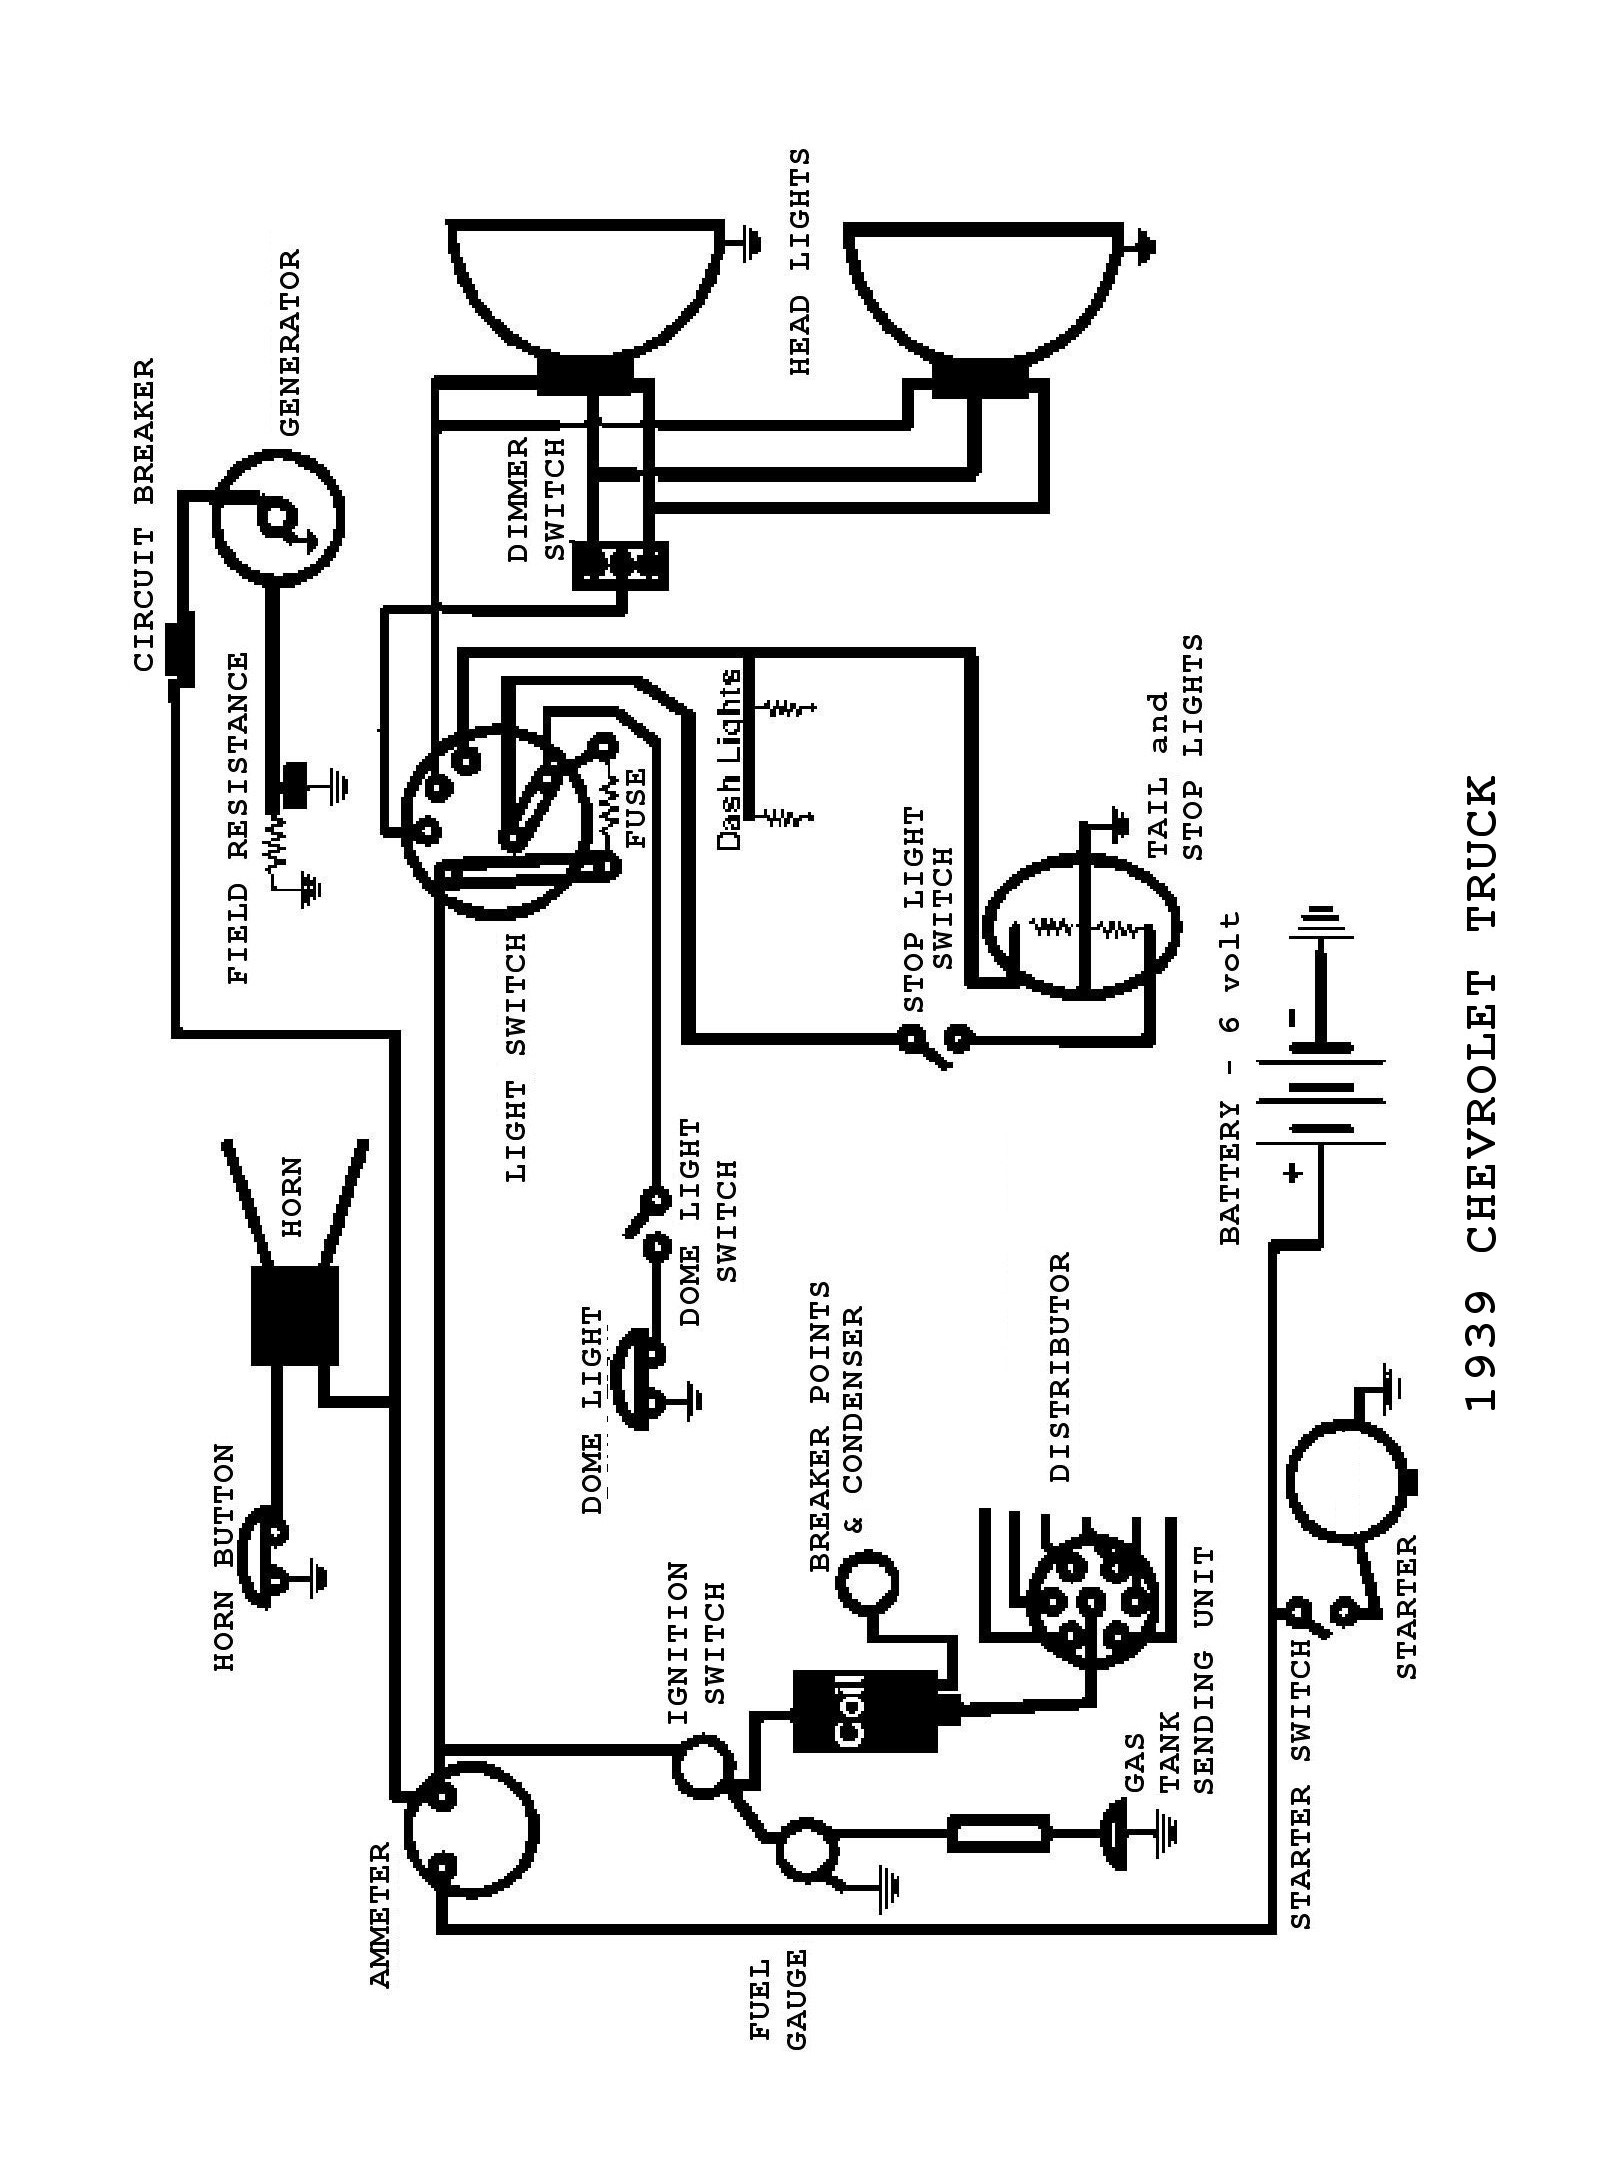 After Market Wiper Motor Wiring Diagram For A Ford F1